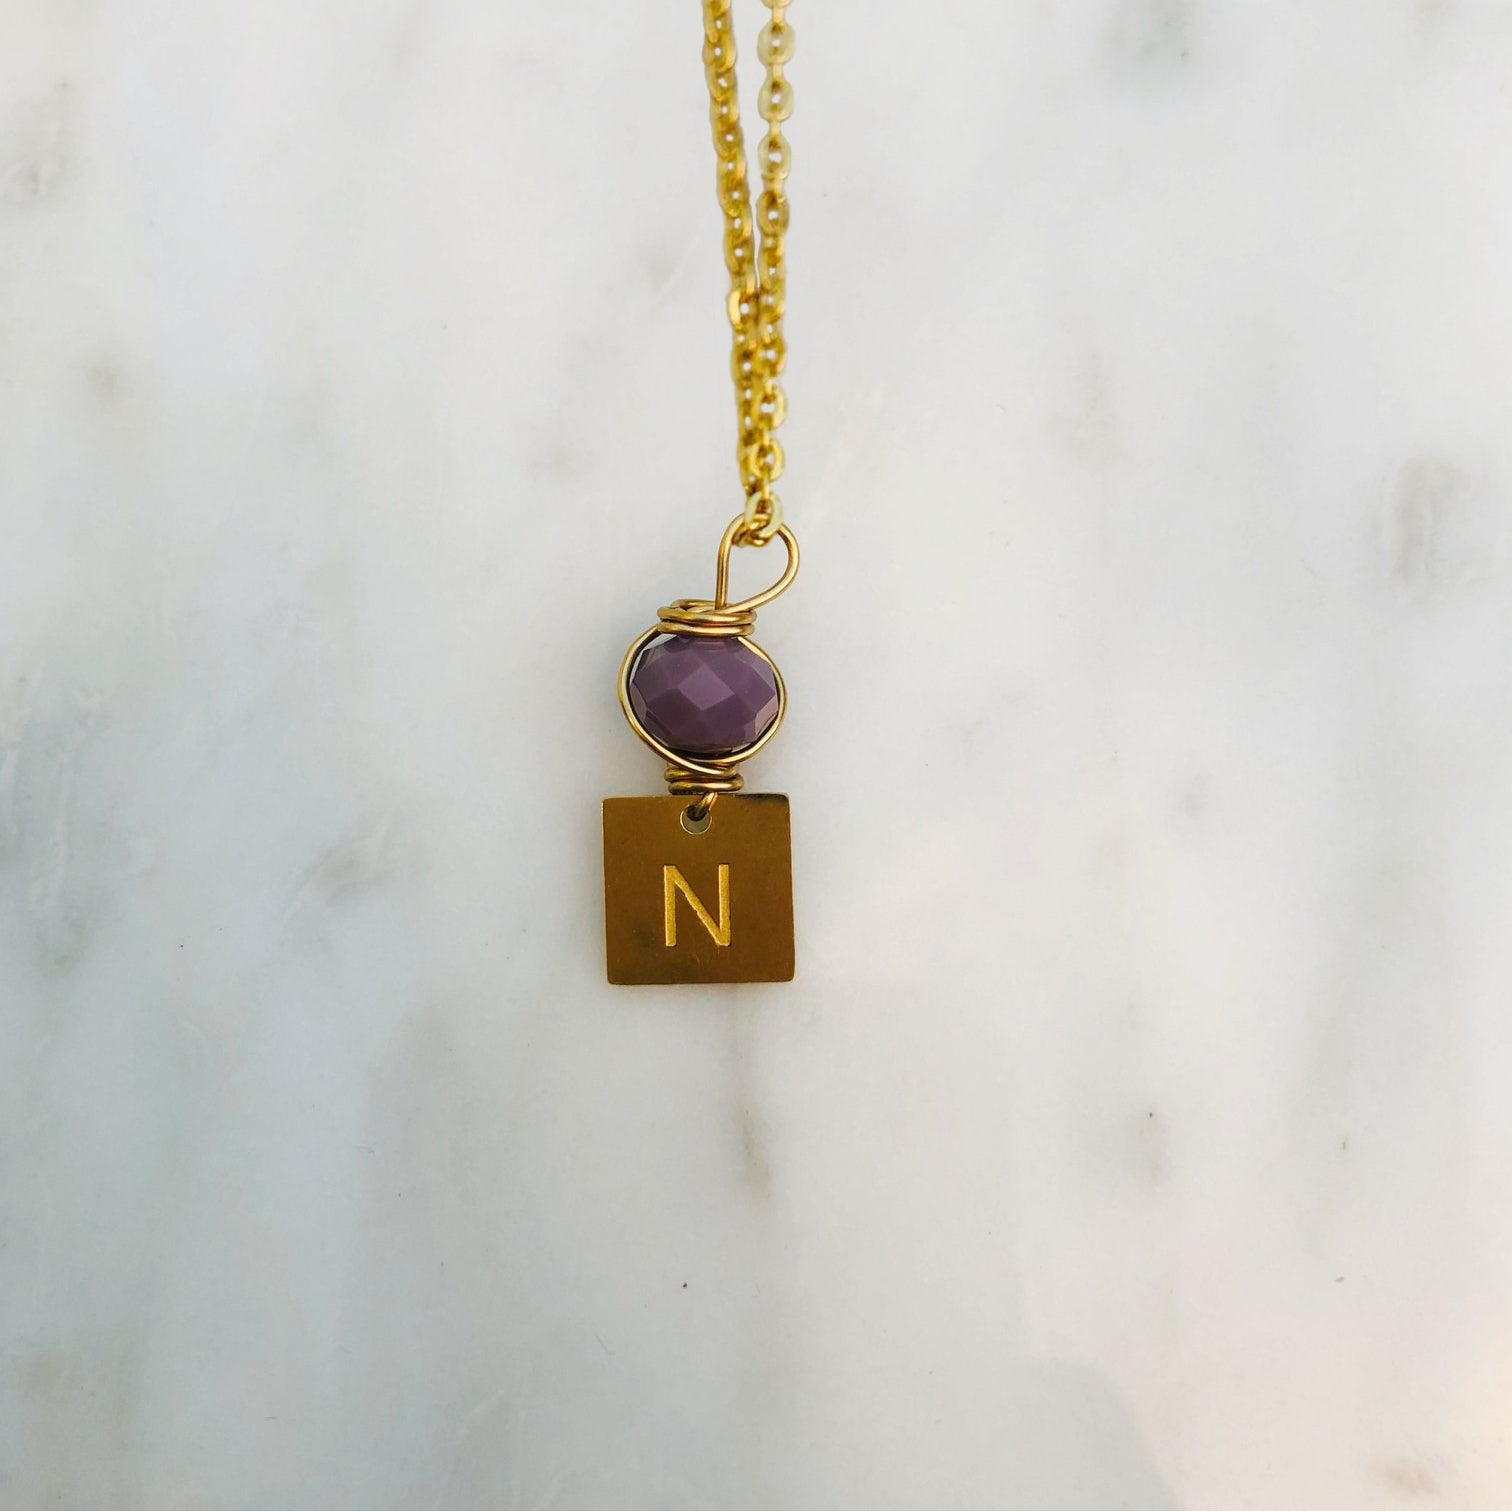 'N' initial chain necklace